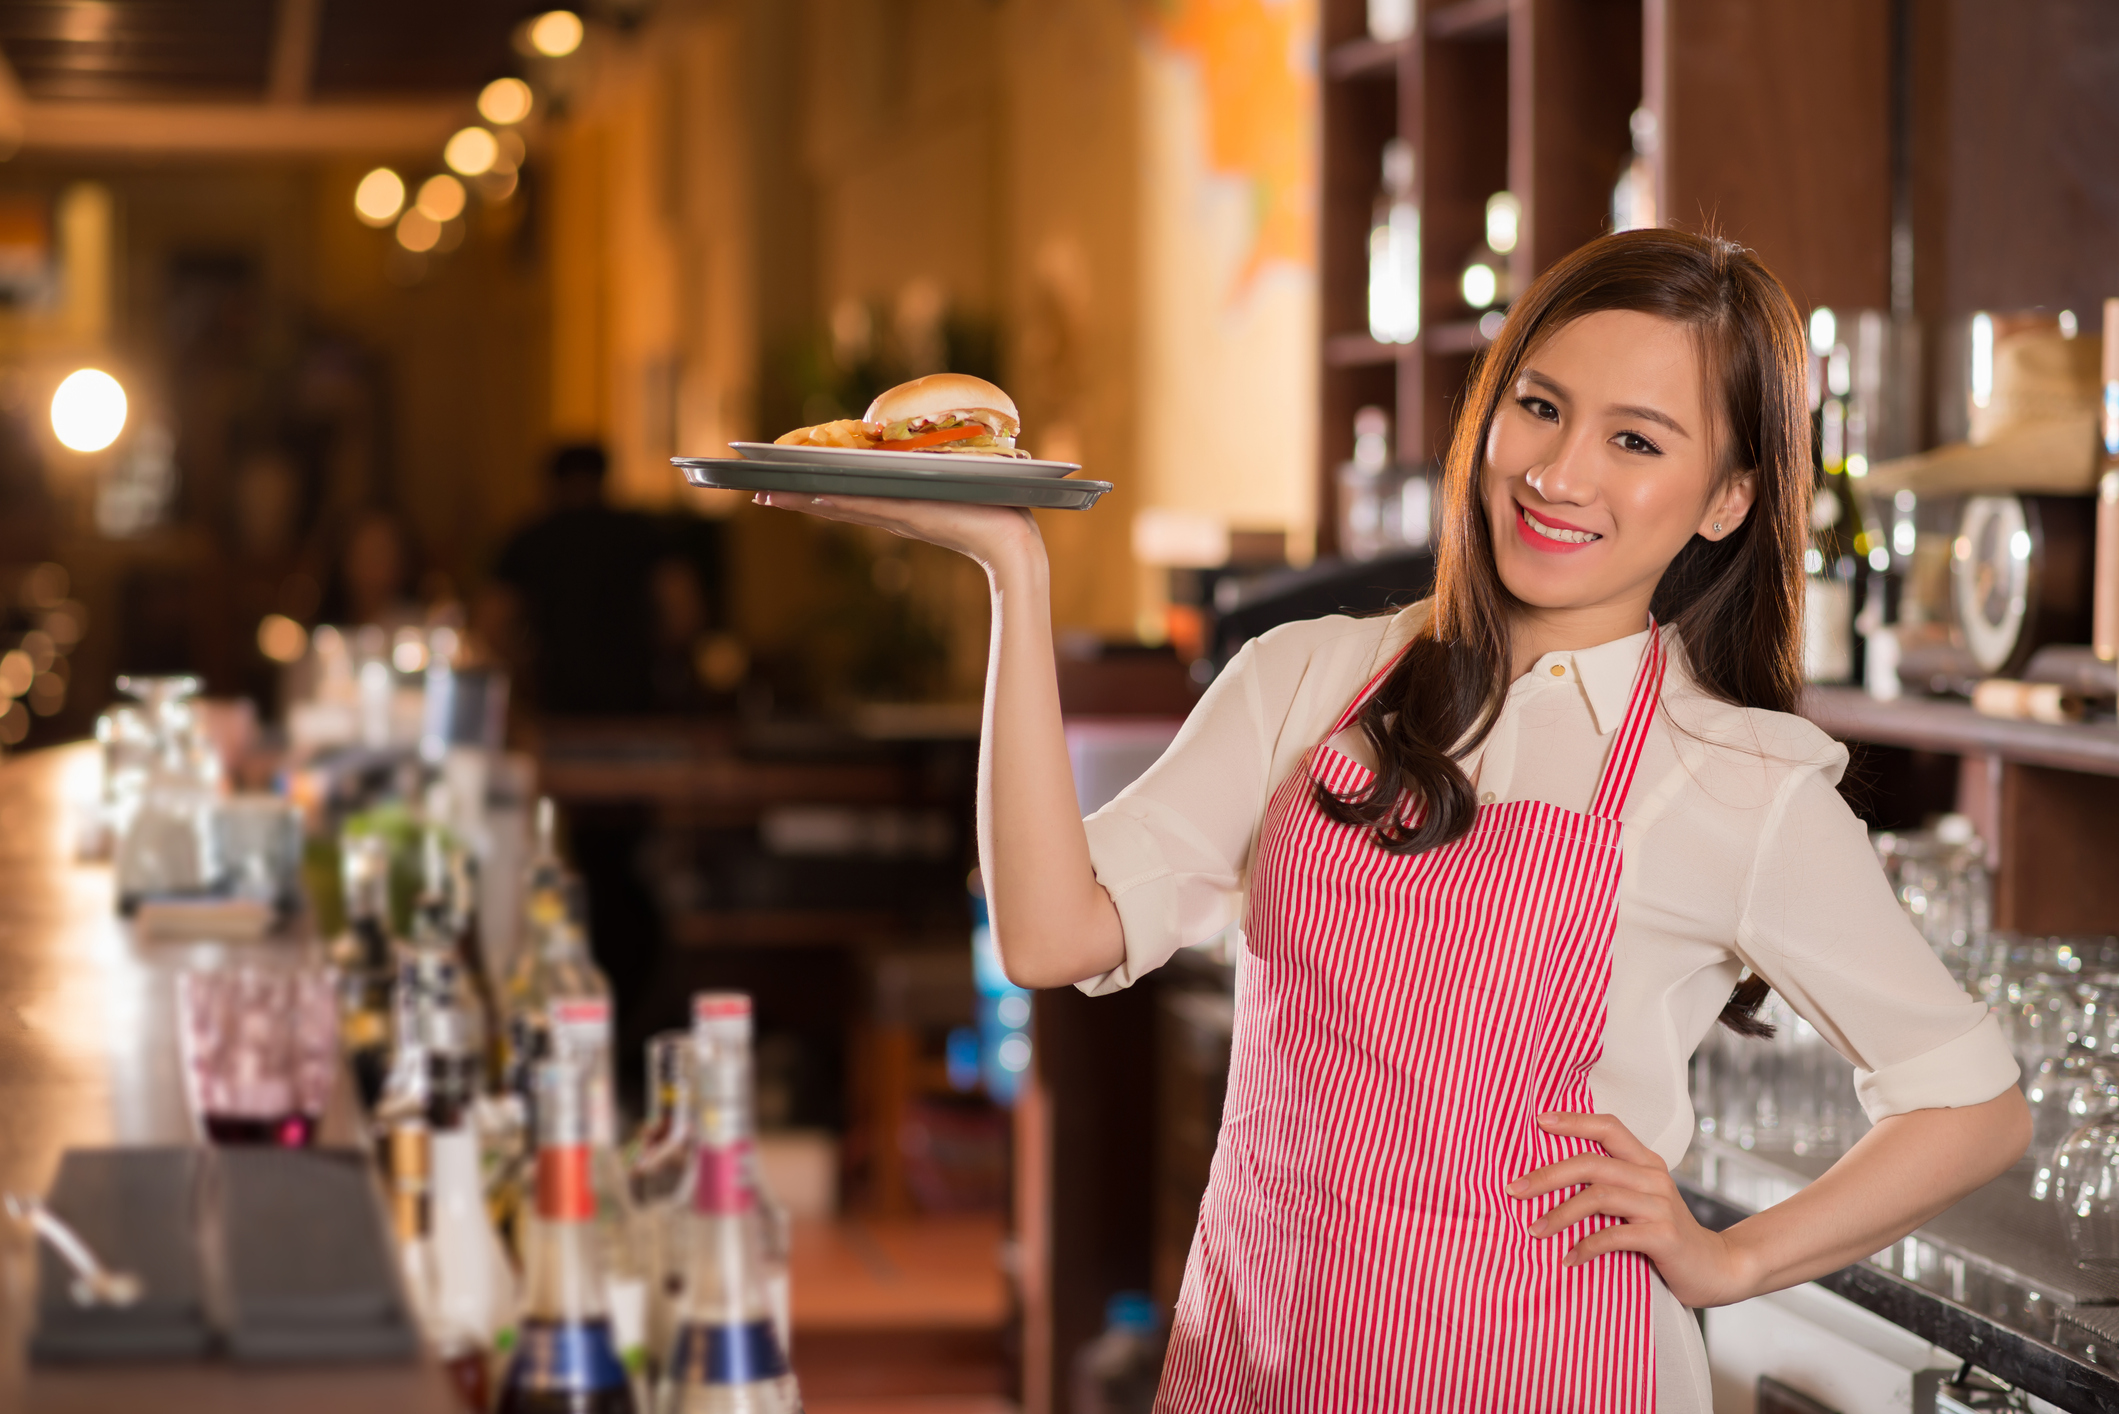 Waitress in red apron holding food